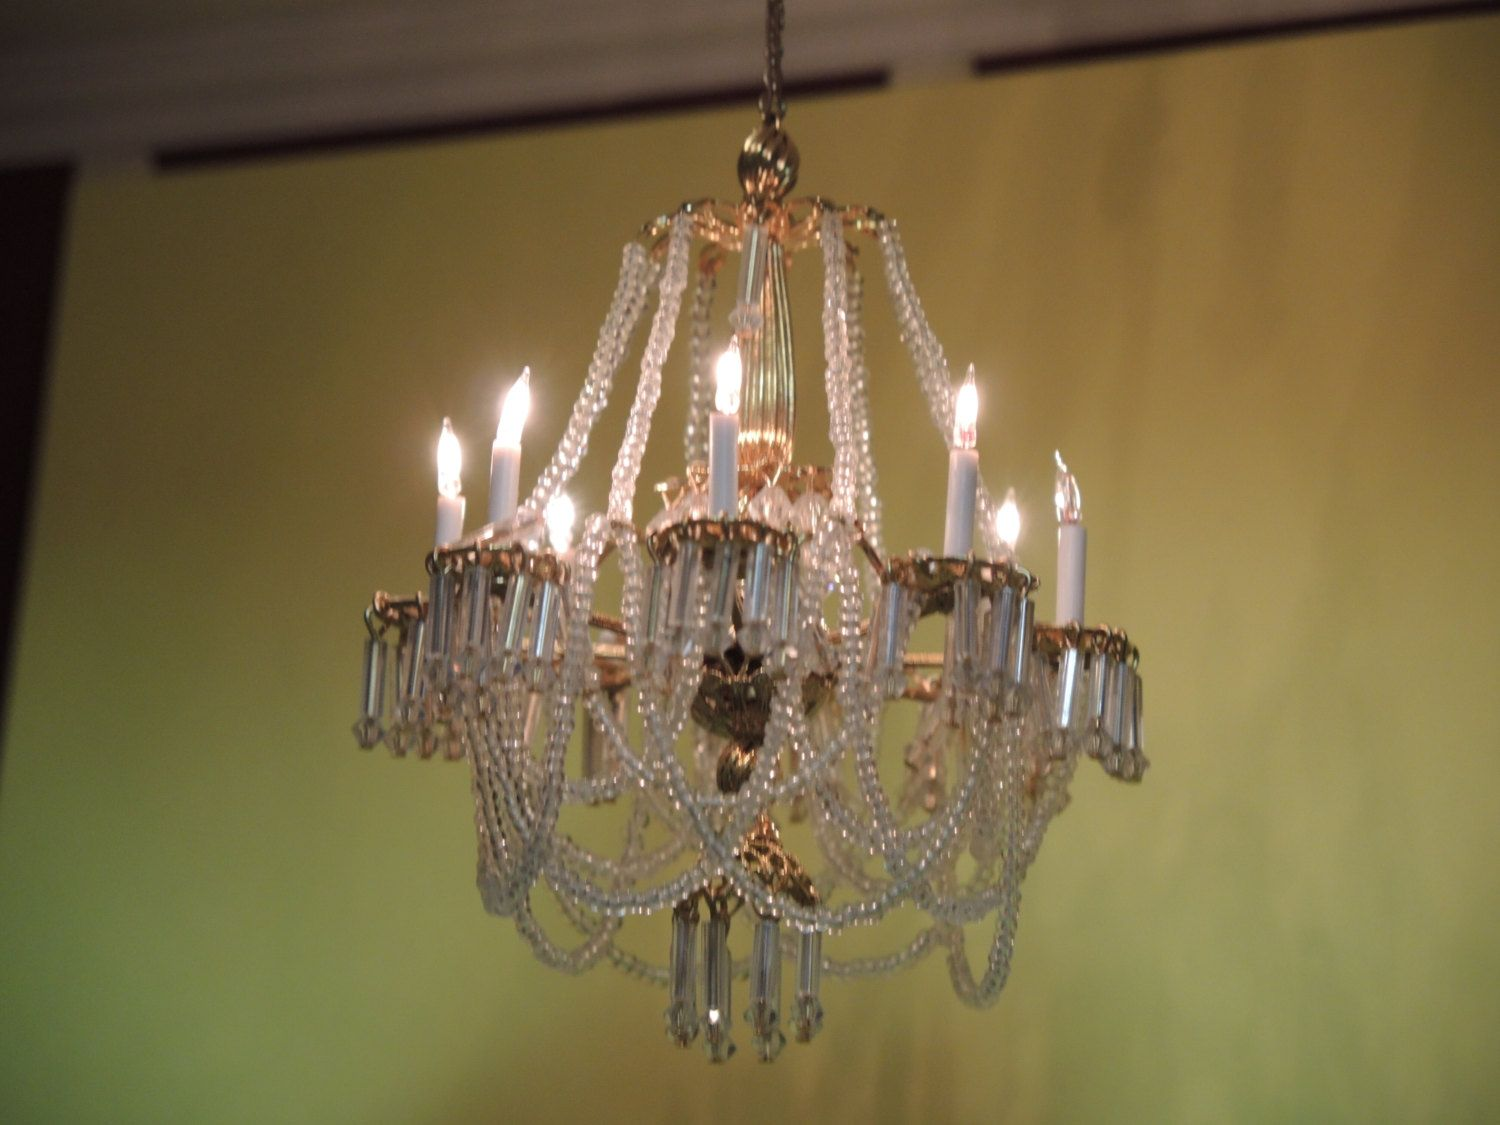 Dollhouse Crystal Chandelier Miniatures Dolls Miniatures Collectibles By Candytheartist On Etsy Crystal Chandelier Chandelier Miniatures